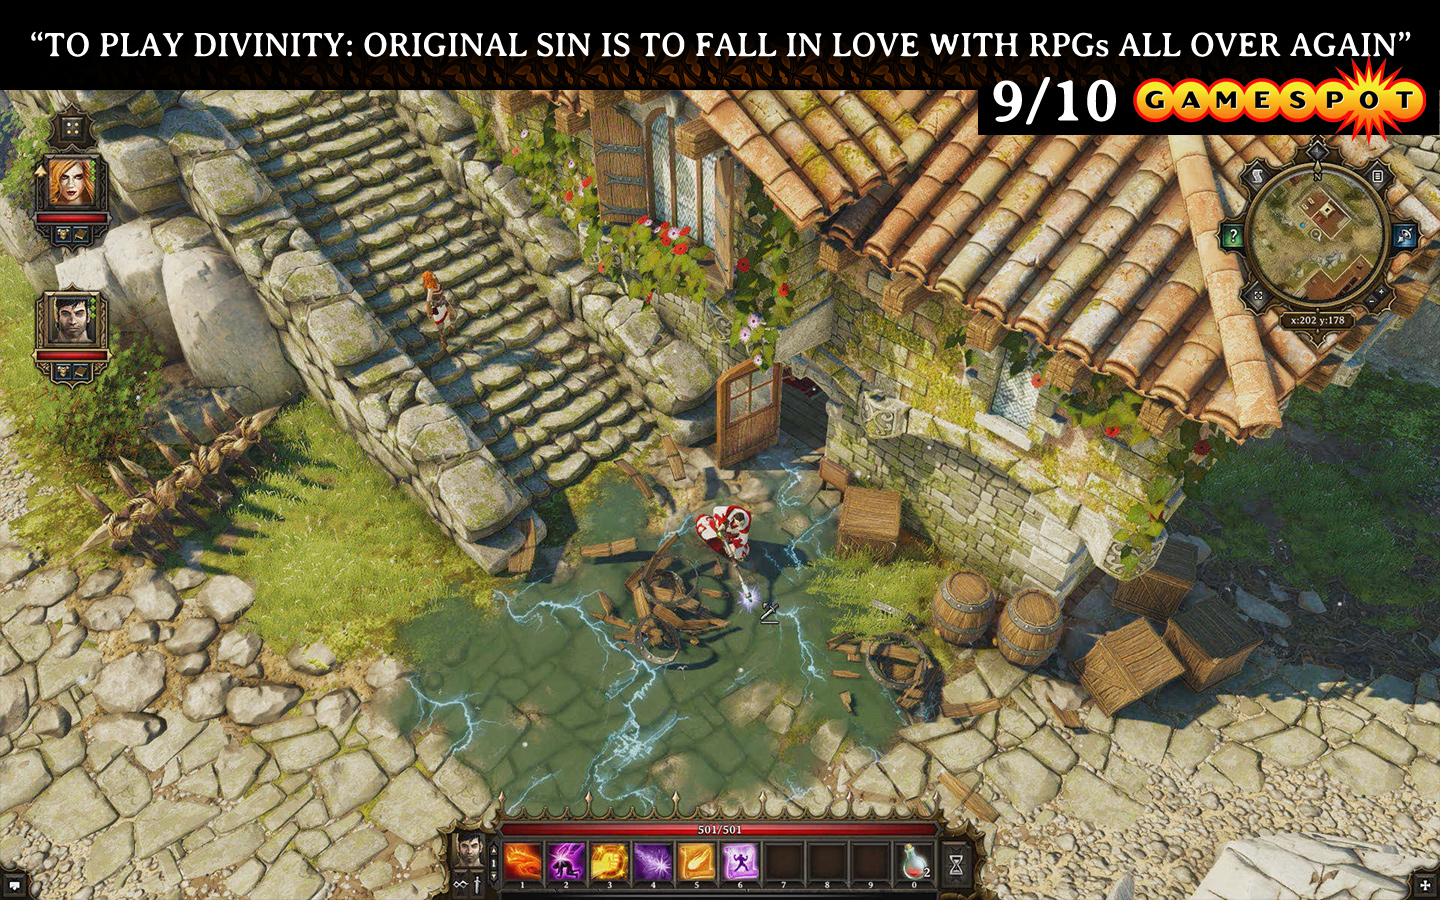 Divinity Original Sin PC v1.0.169 Incluye DLCs